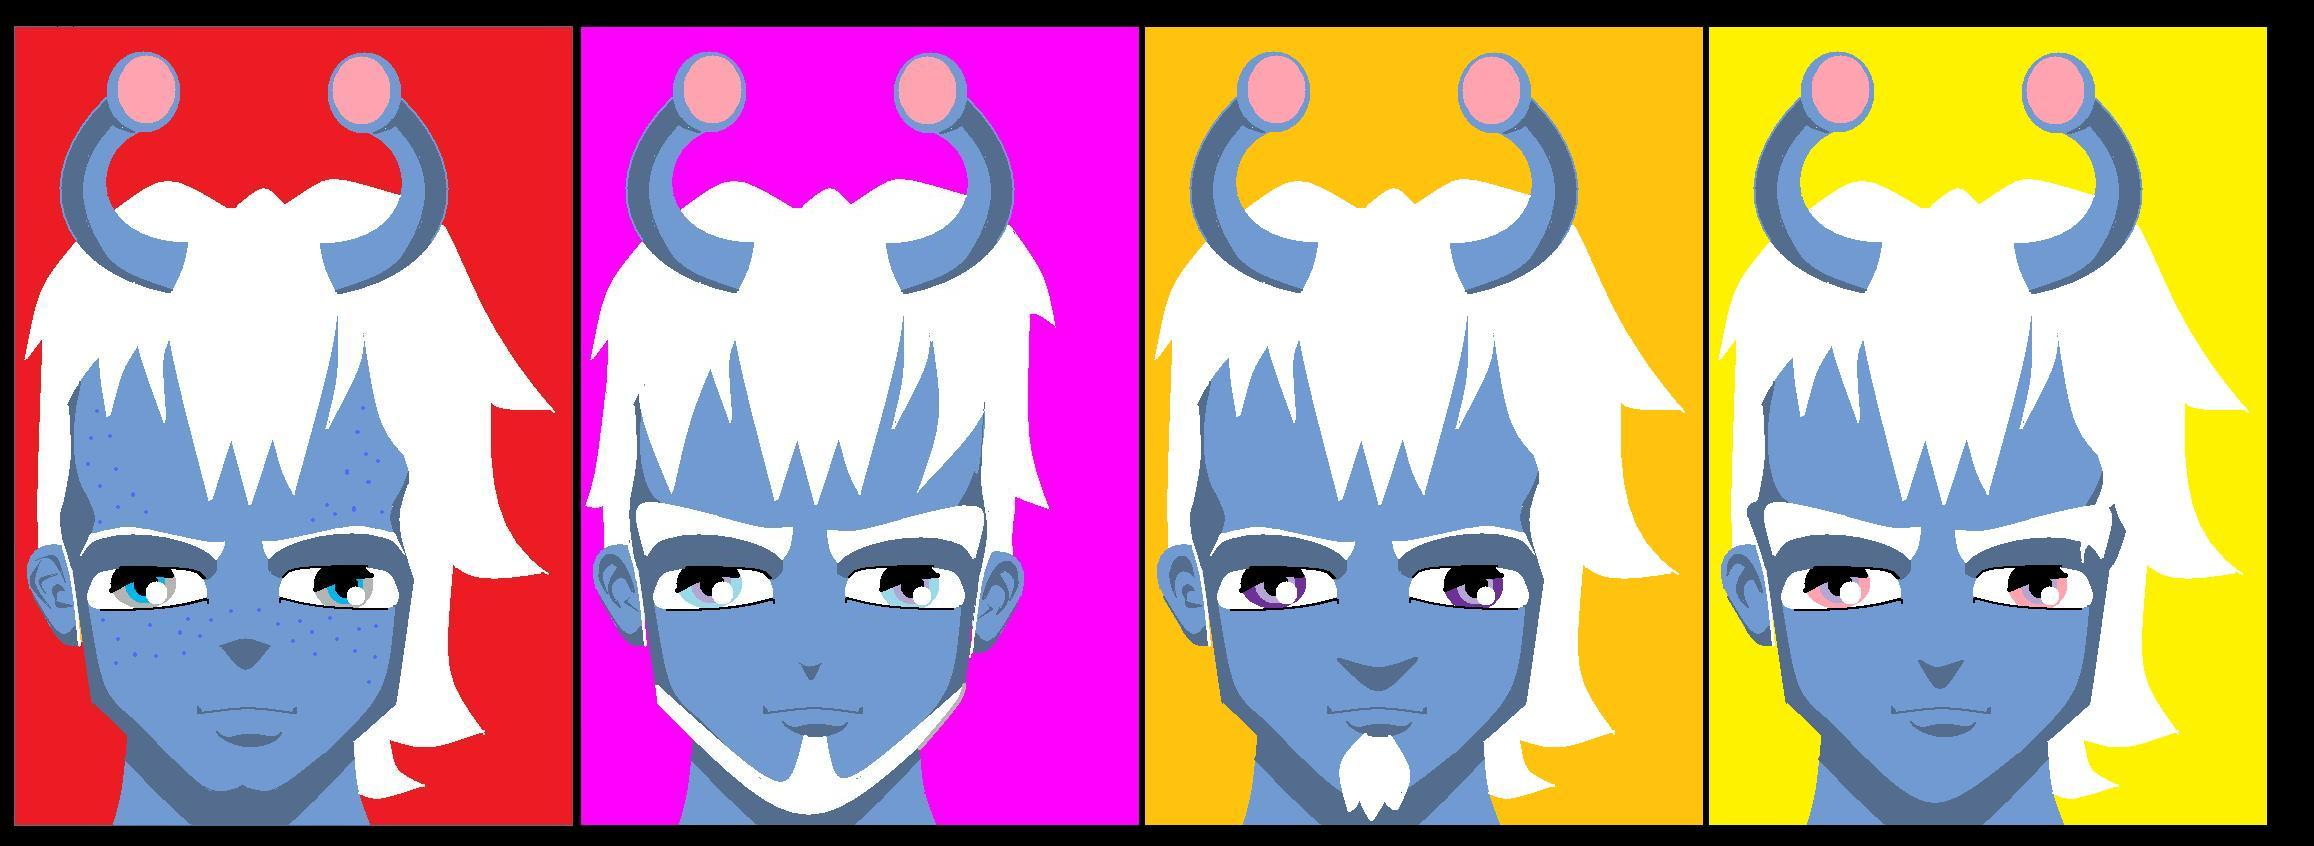 andorian group by RoscoeNC